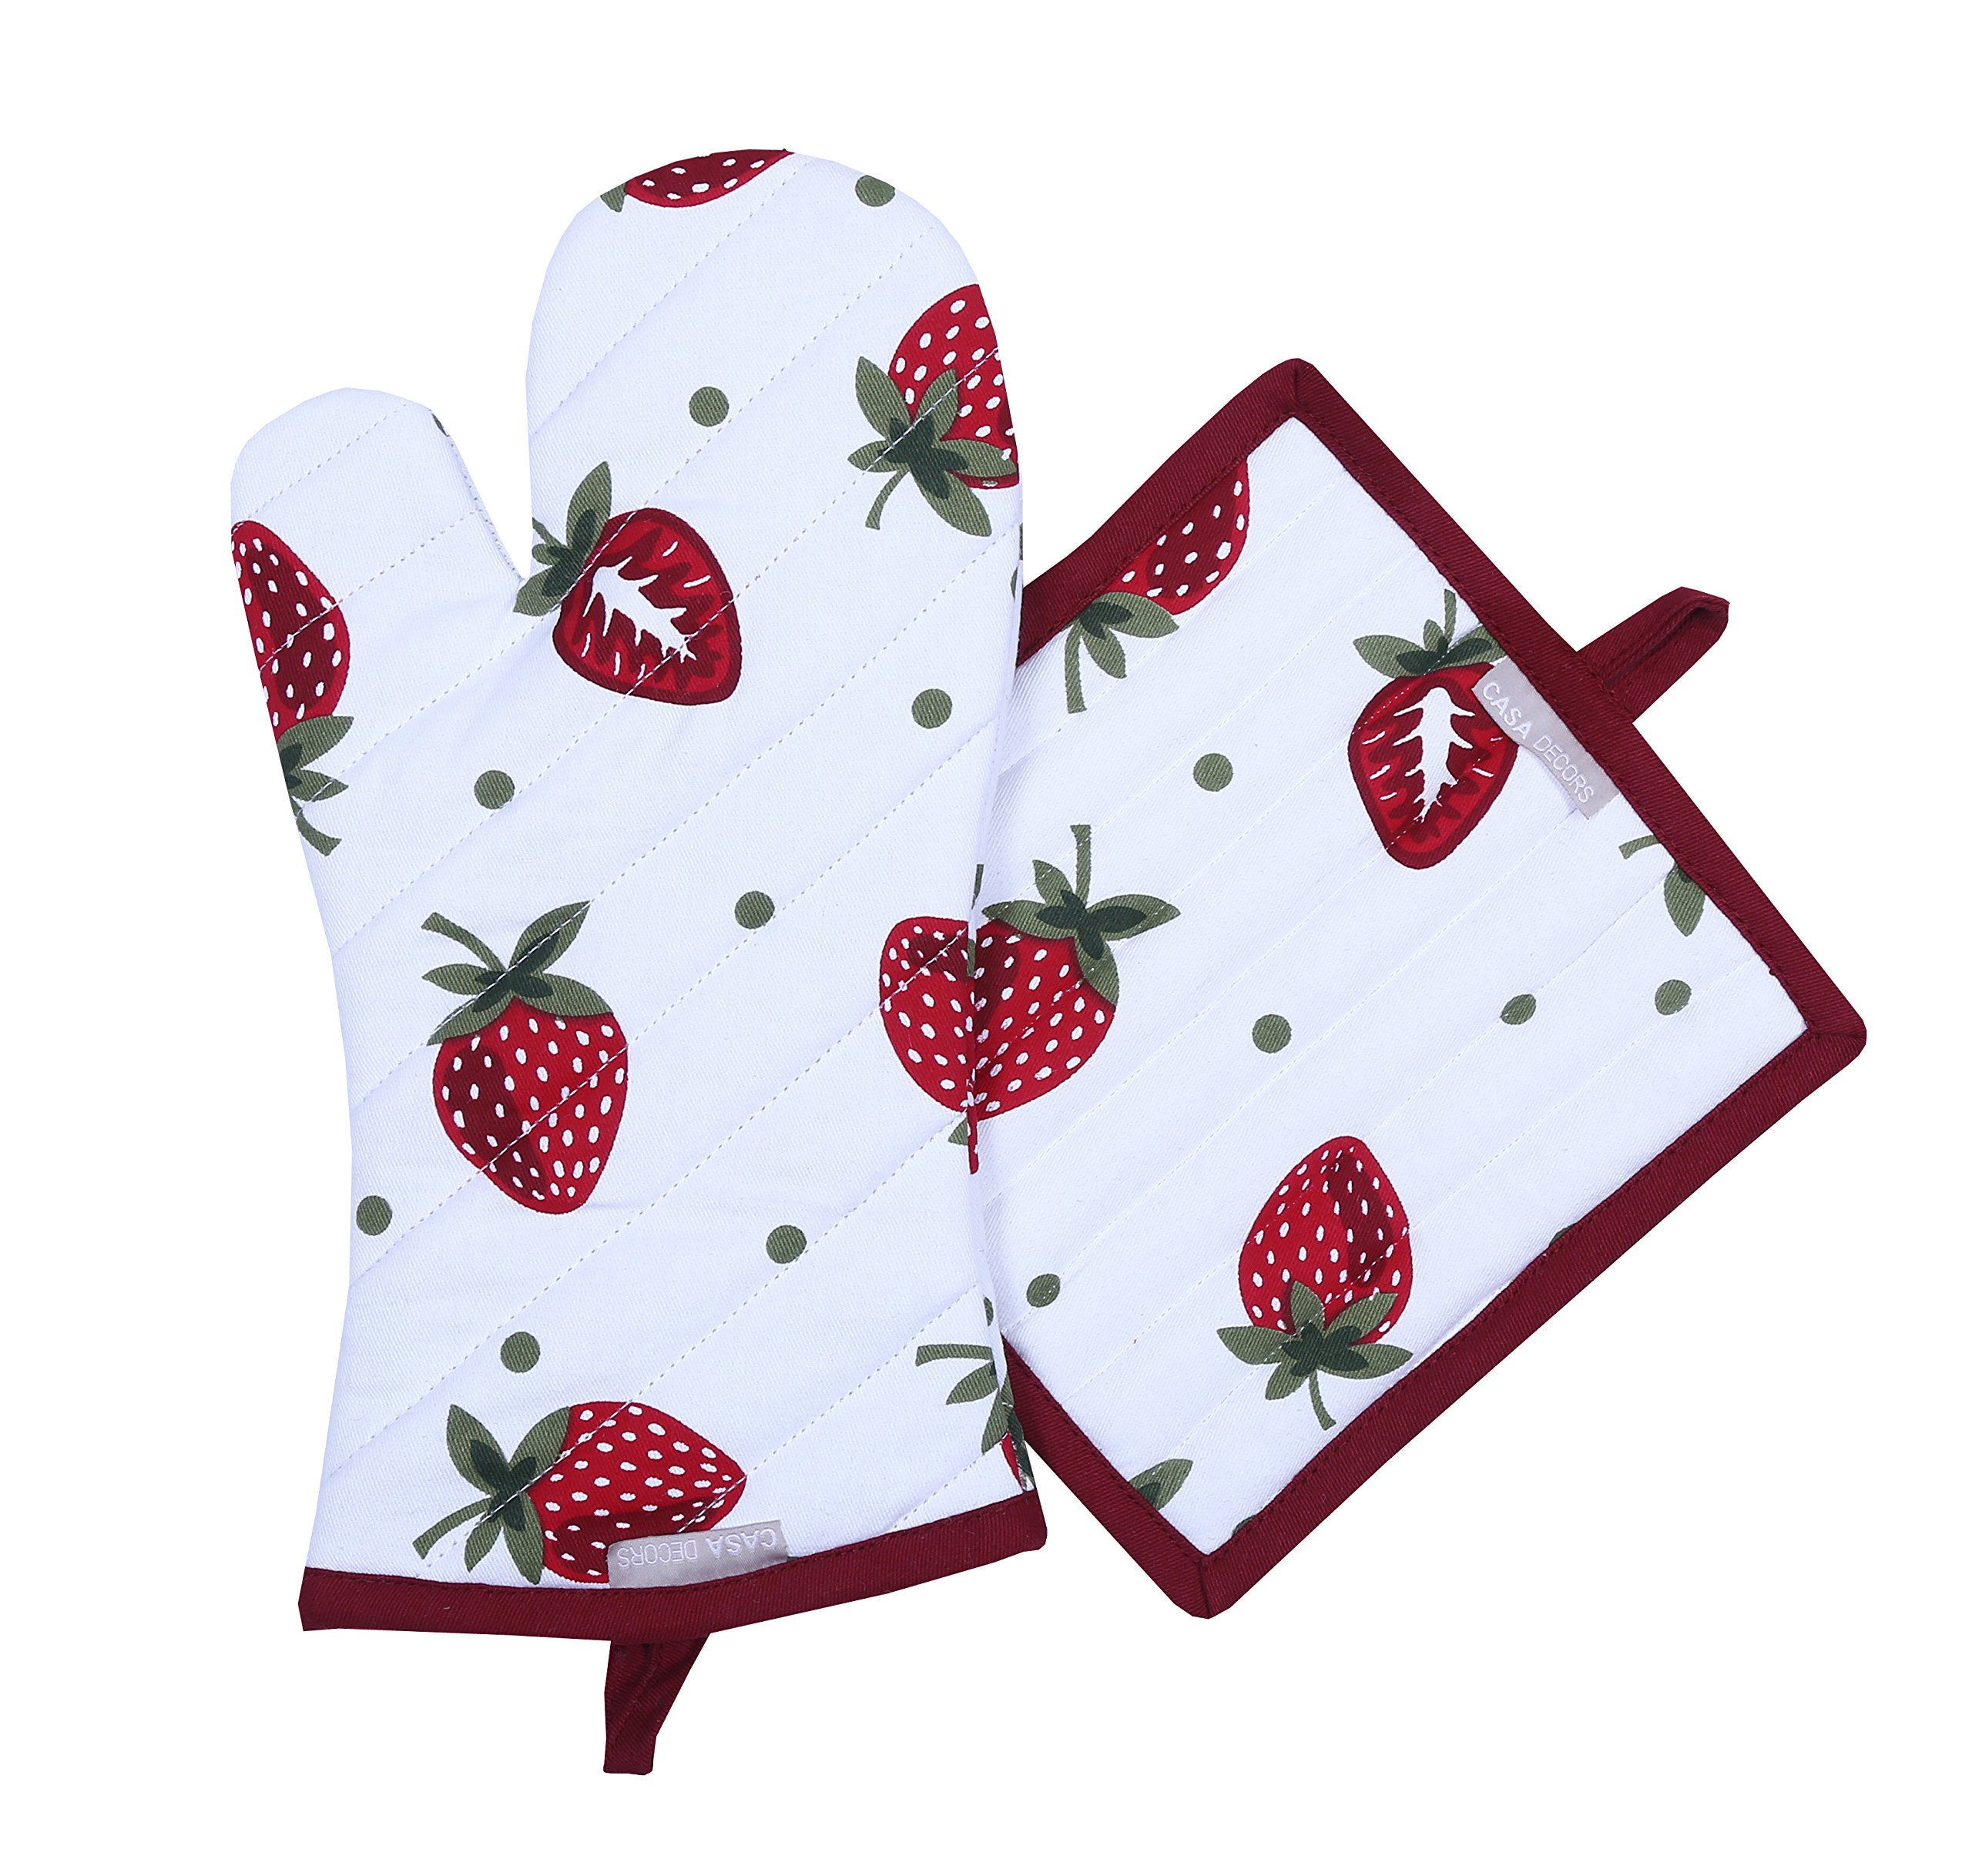 Pot Holders and Oven Mitts, Unique Berry Blast Design, Heat Resistant, Made of 100% Cotton, Eco-Friendly & Safe, Set of 1 Oven Mitt and 1 Pot Holder, Pot Holders and Oven Mitts Sets By CASA DECORS